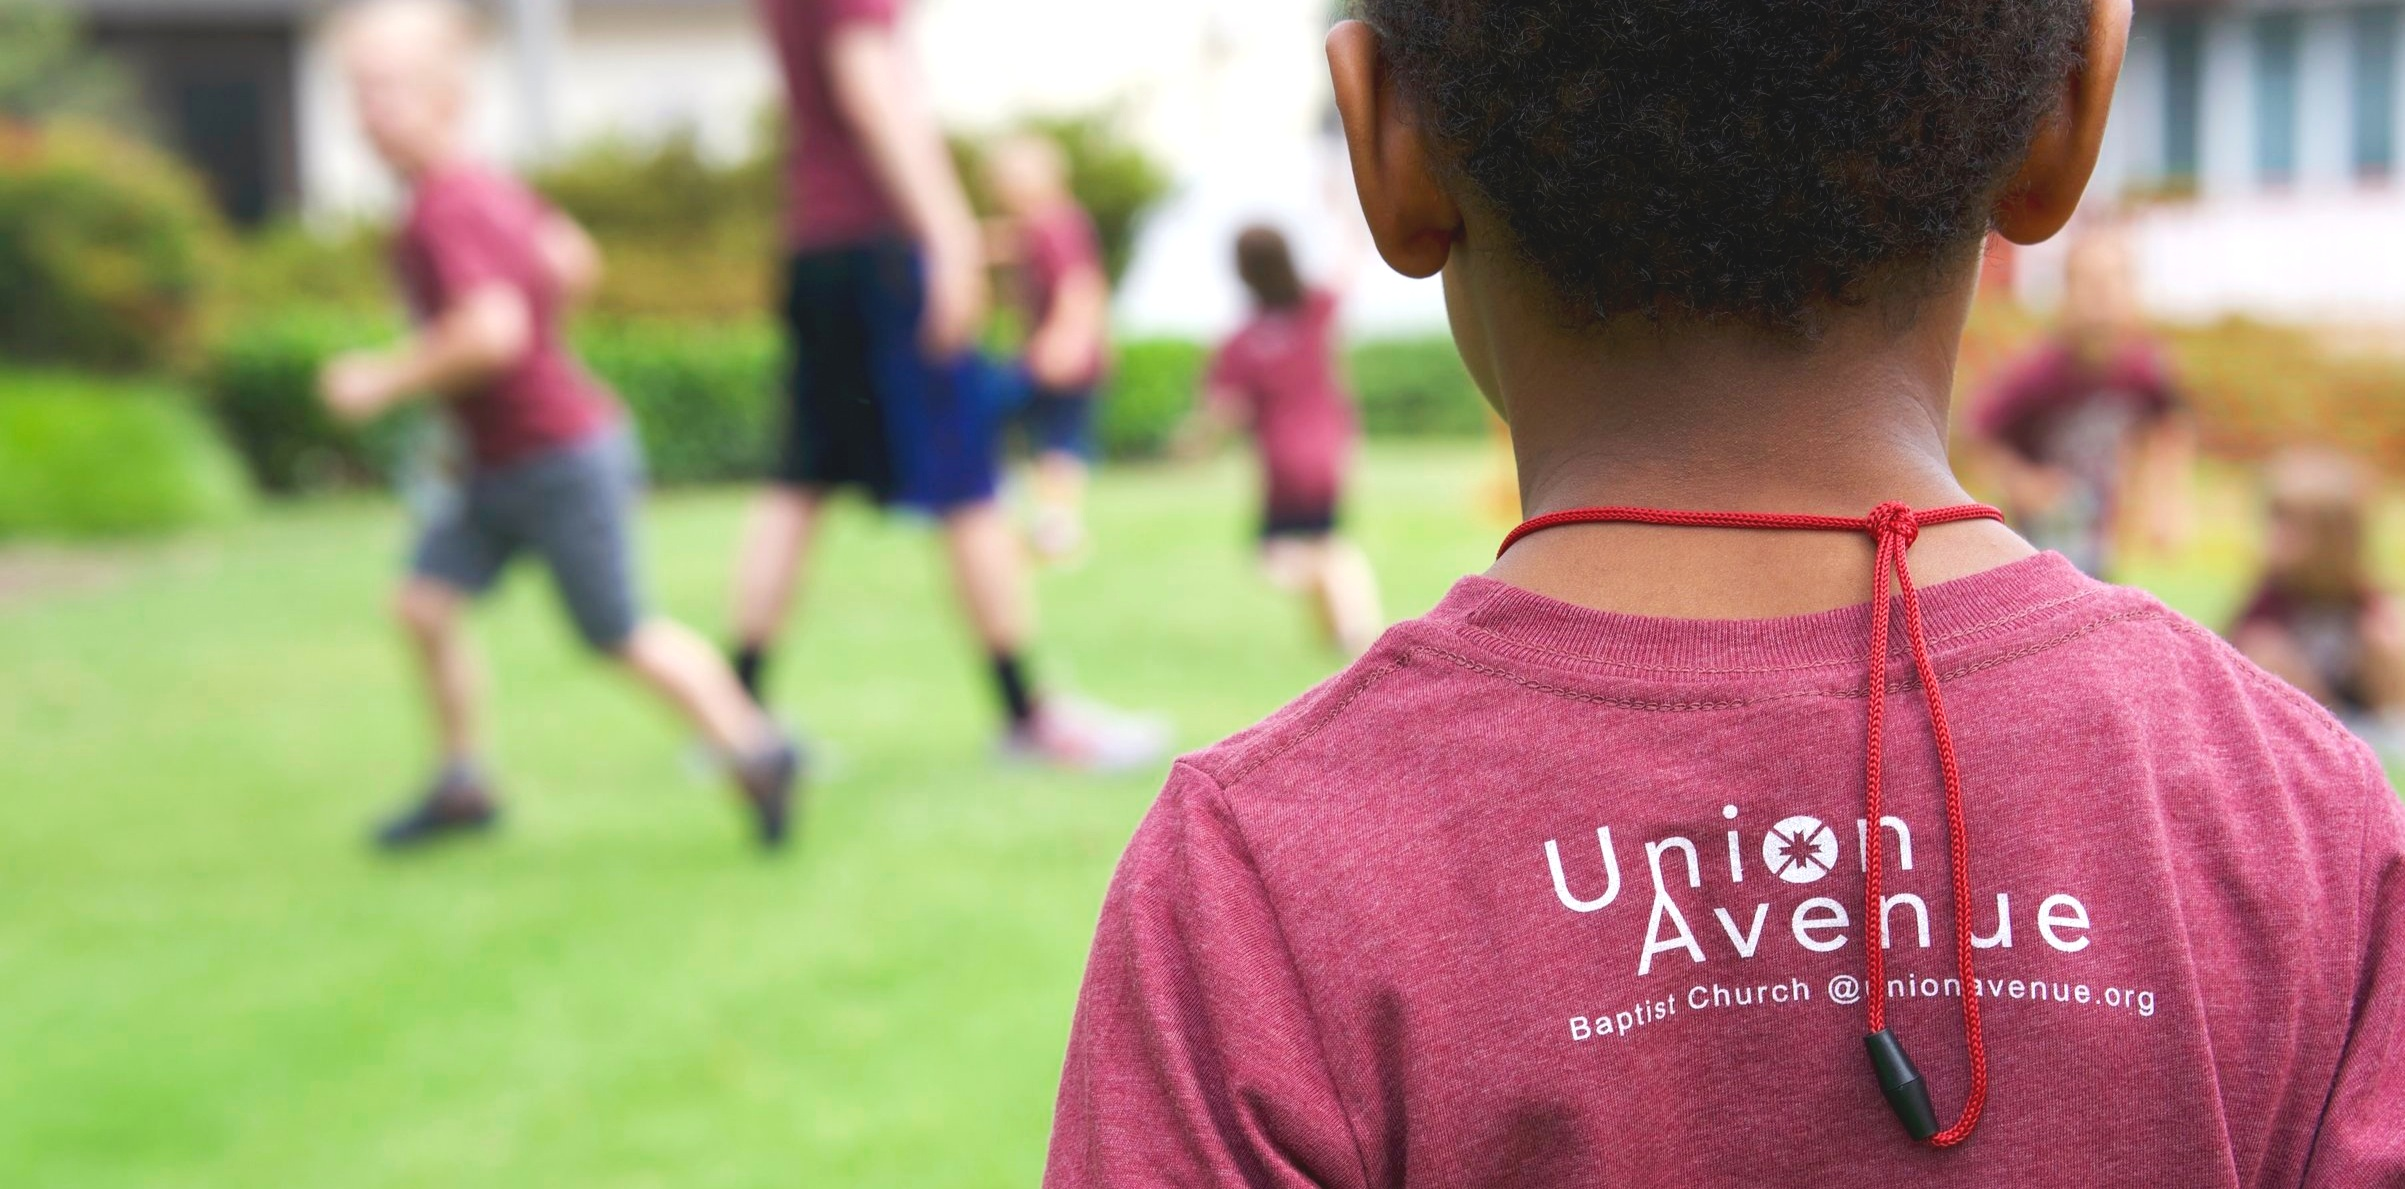 KIDTOWN - At UABC Kidtown, we believe that our mission is to develop fully devoted followers of Jesus. That means we must train and love them today so that what happens in church on Sunday will make a real difference in a kid's life on Monday.